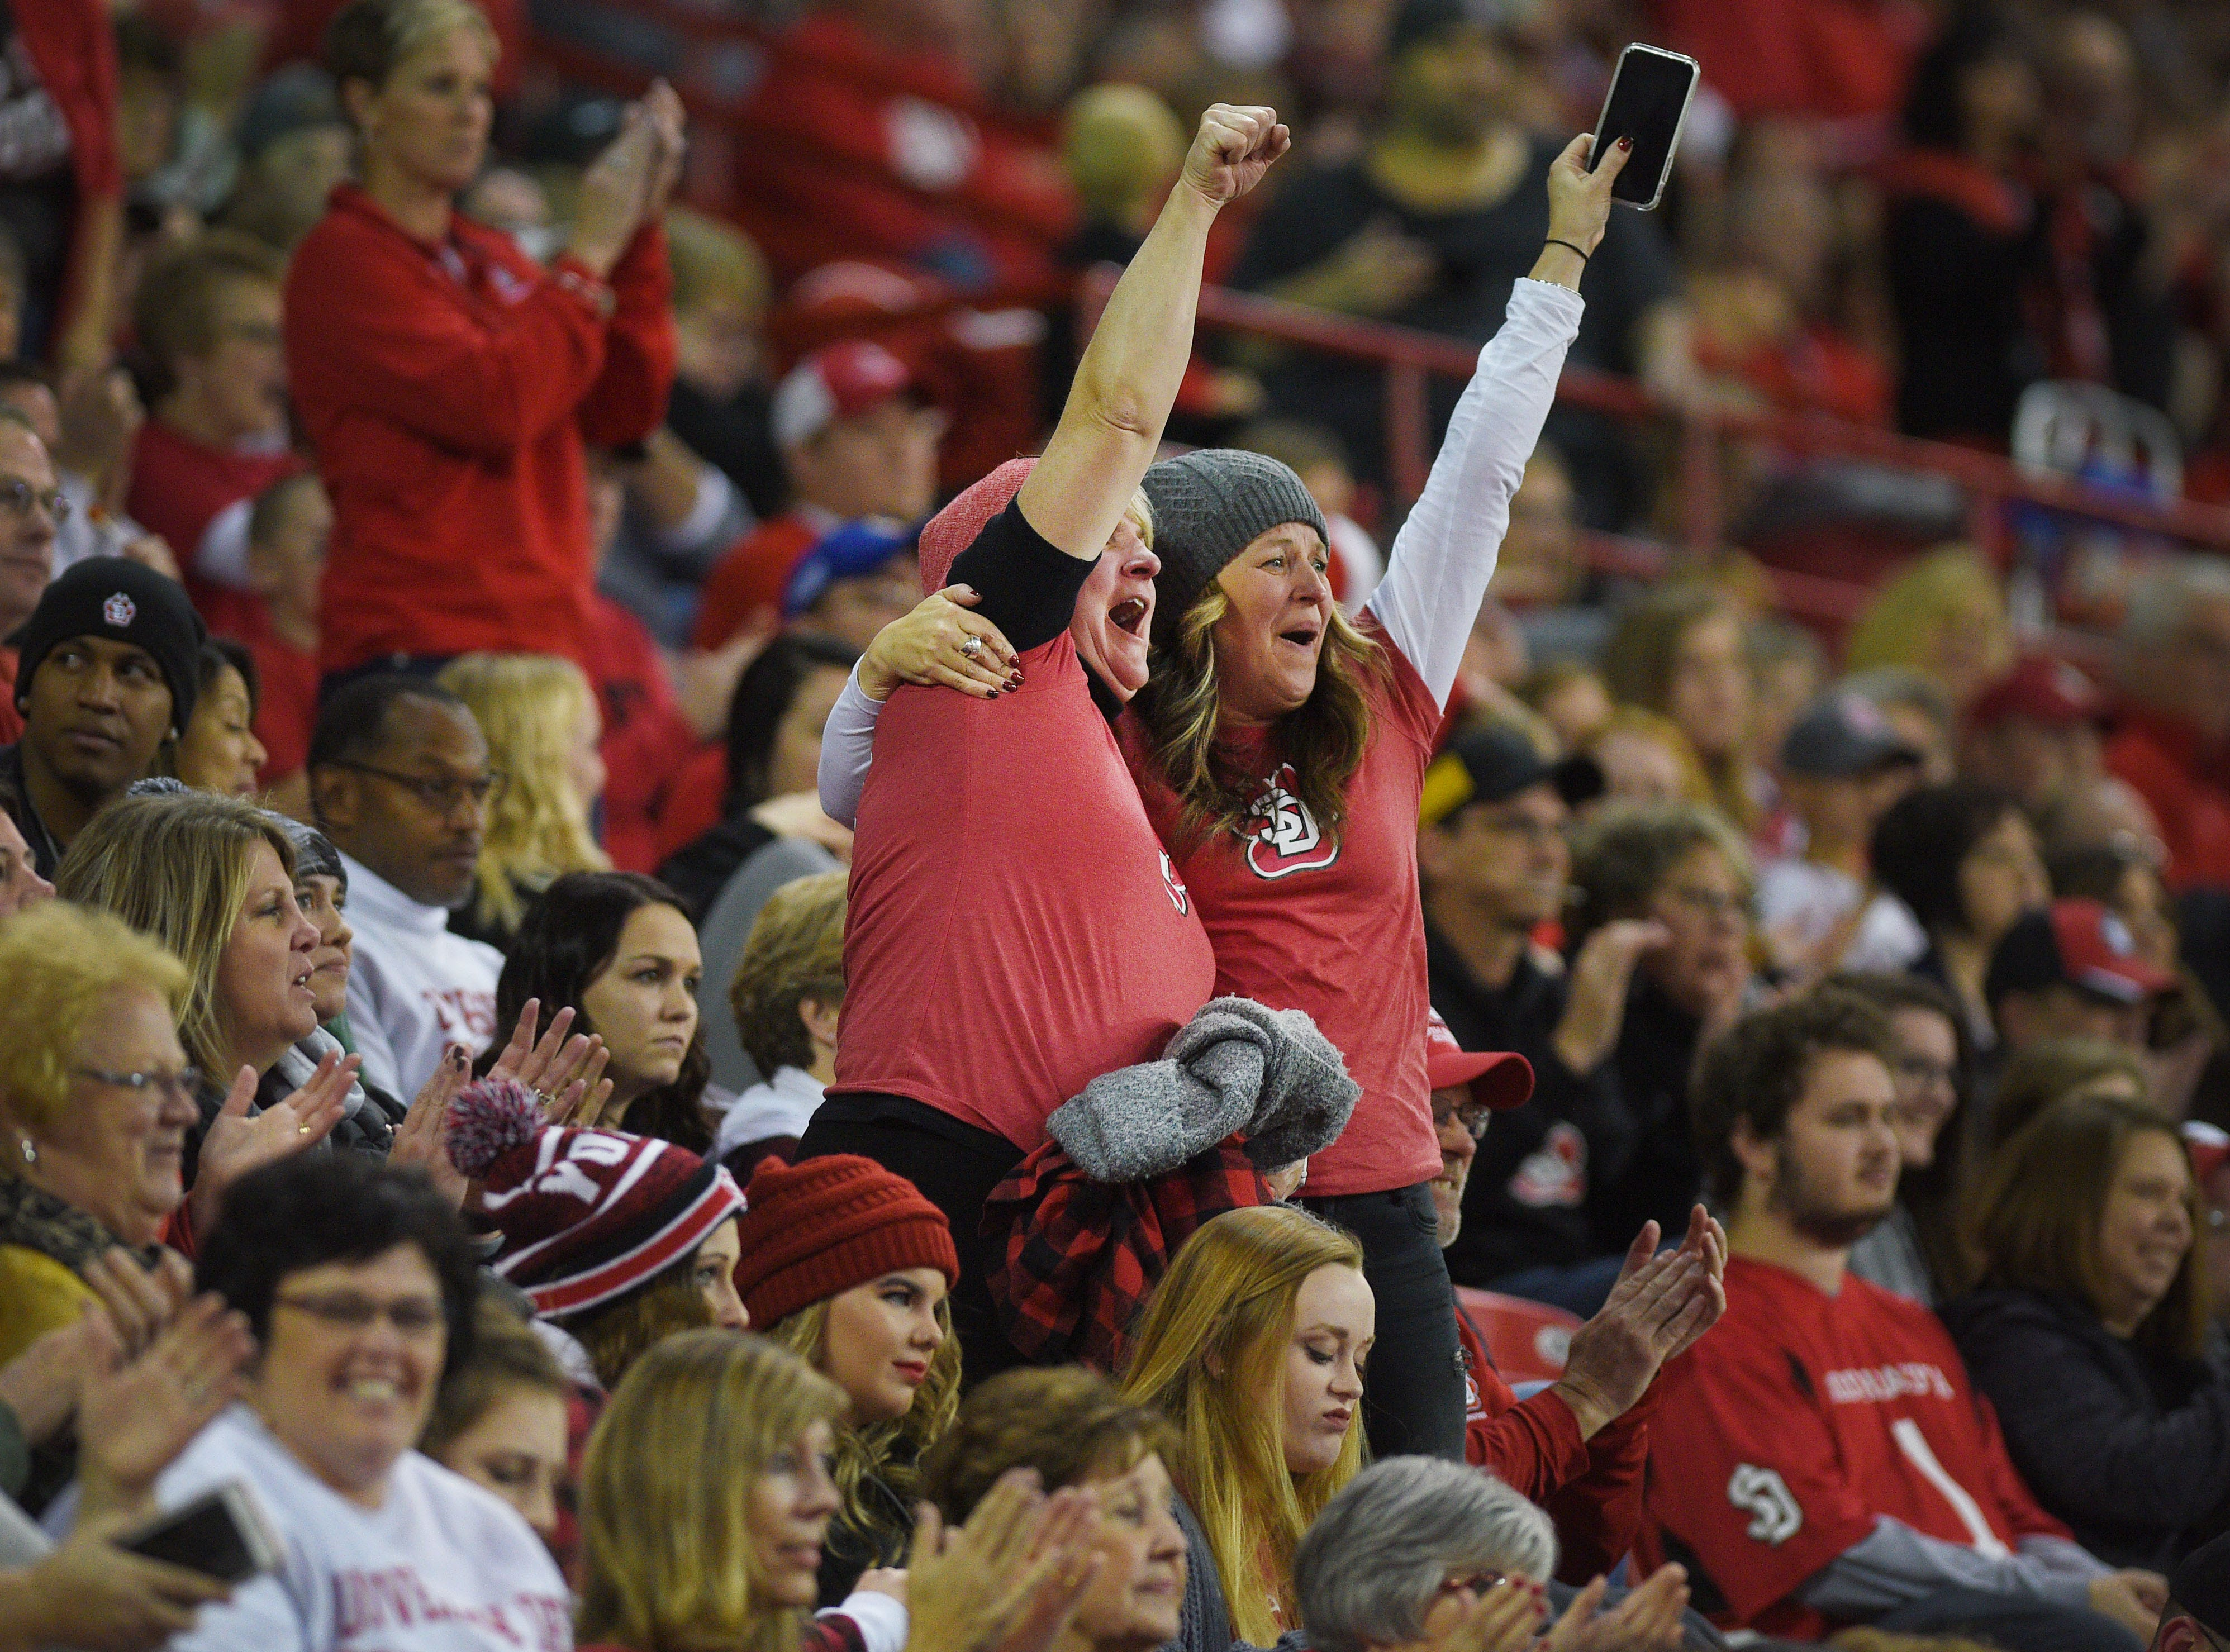 USD fans cheer during the game against Western Illinois Saturday, Nov. 10, at the DakotaDome in Vermillion.